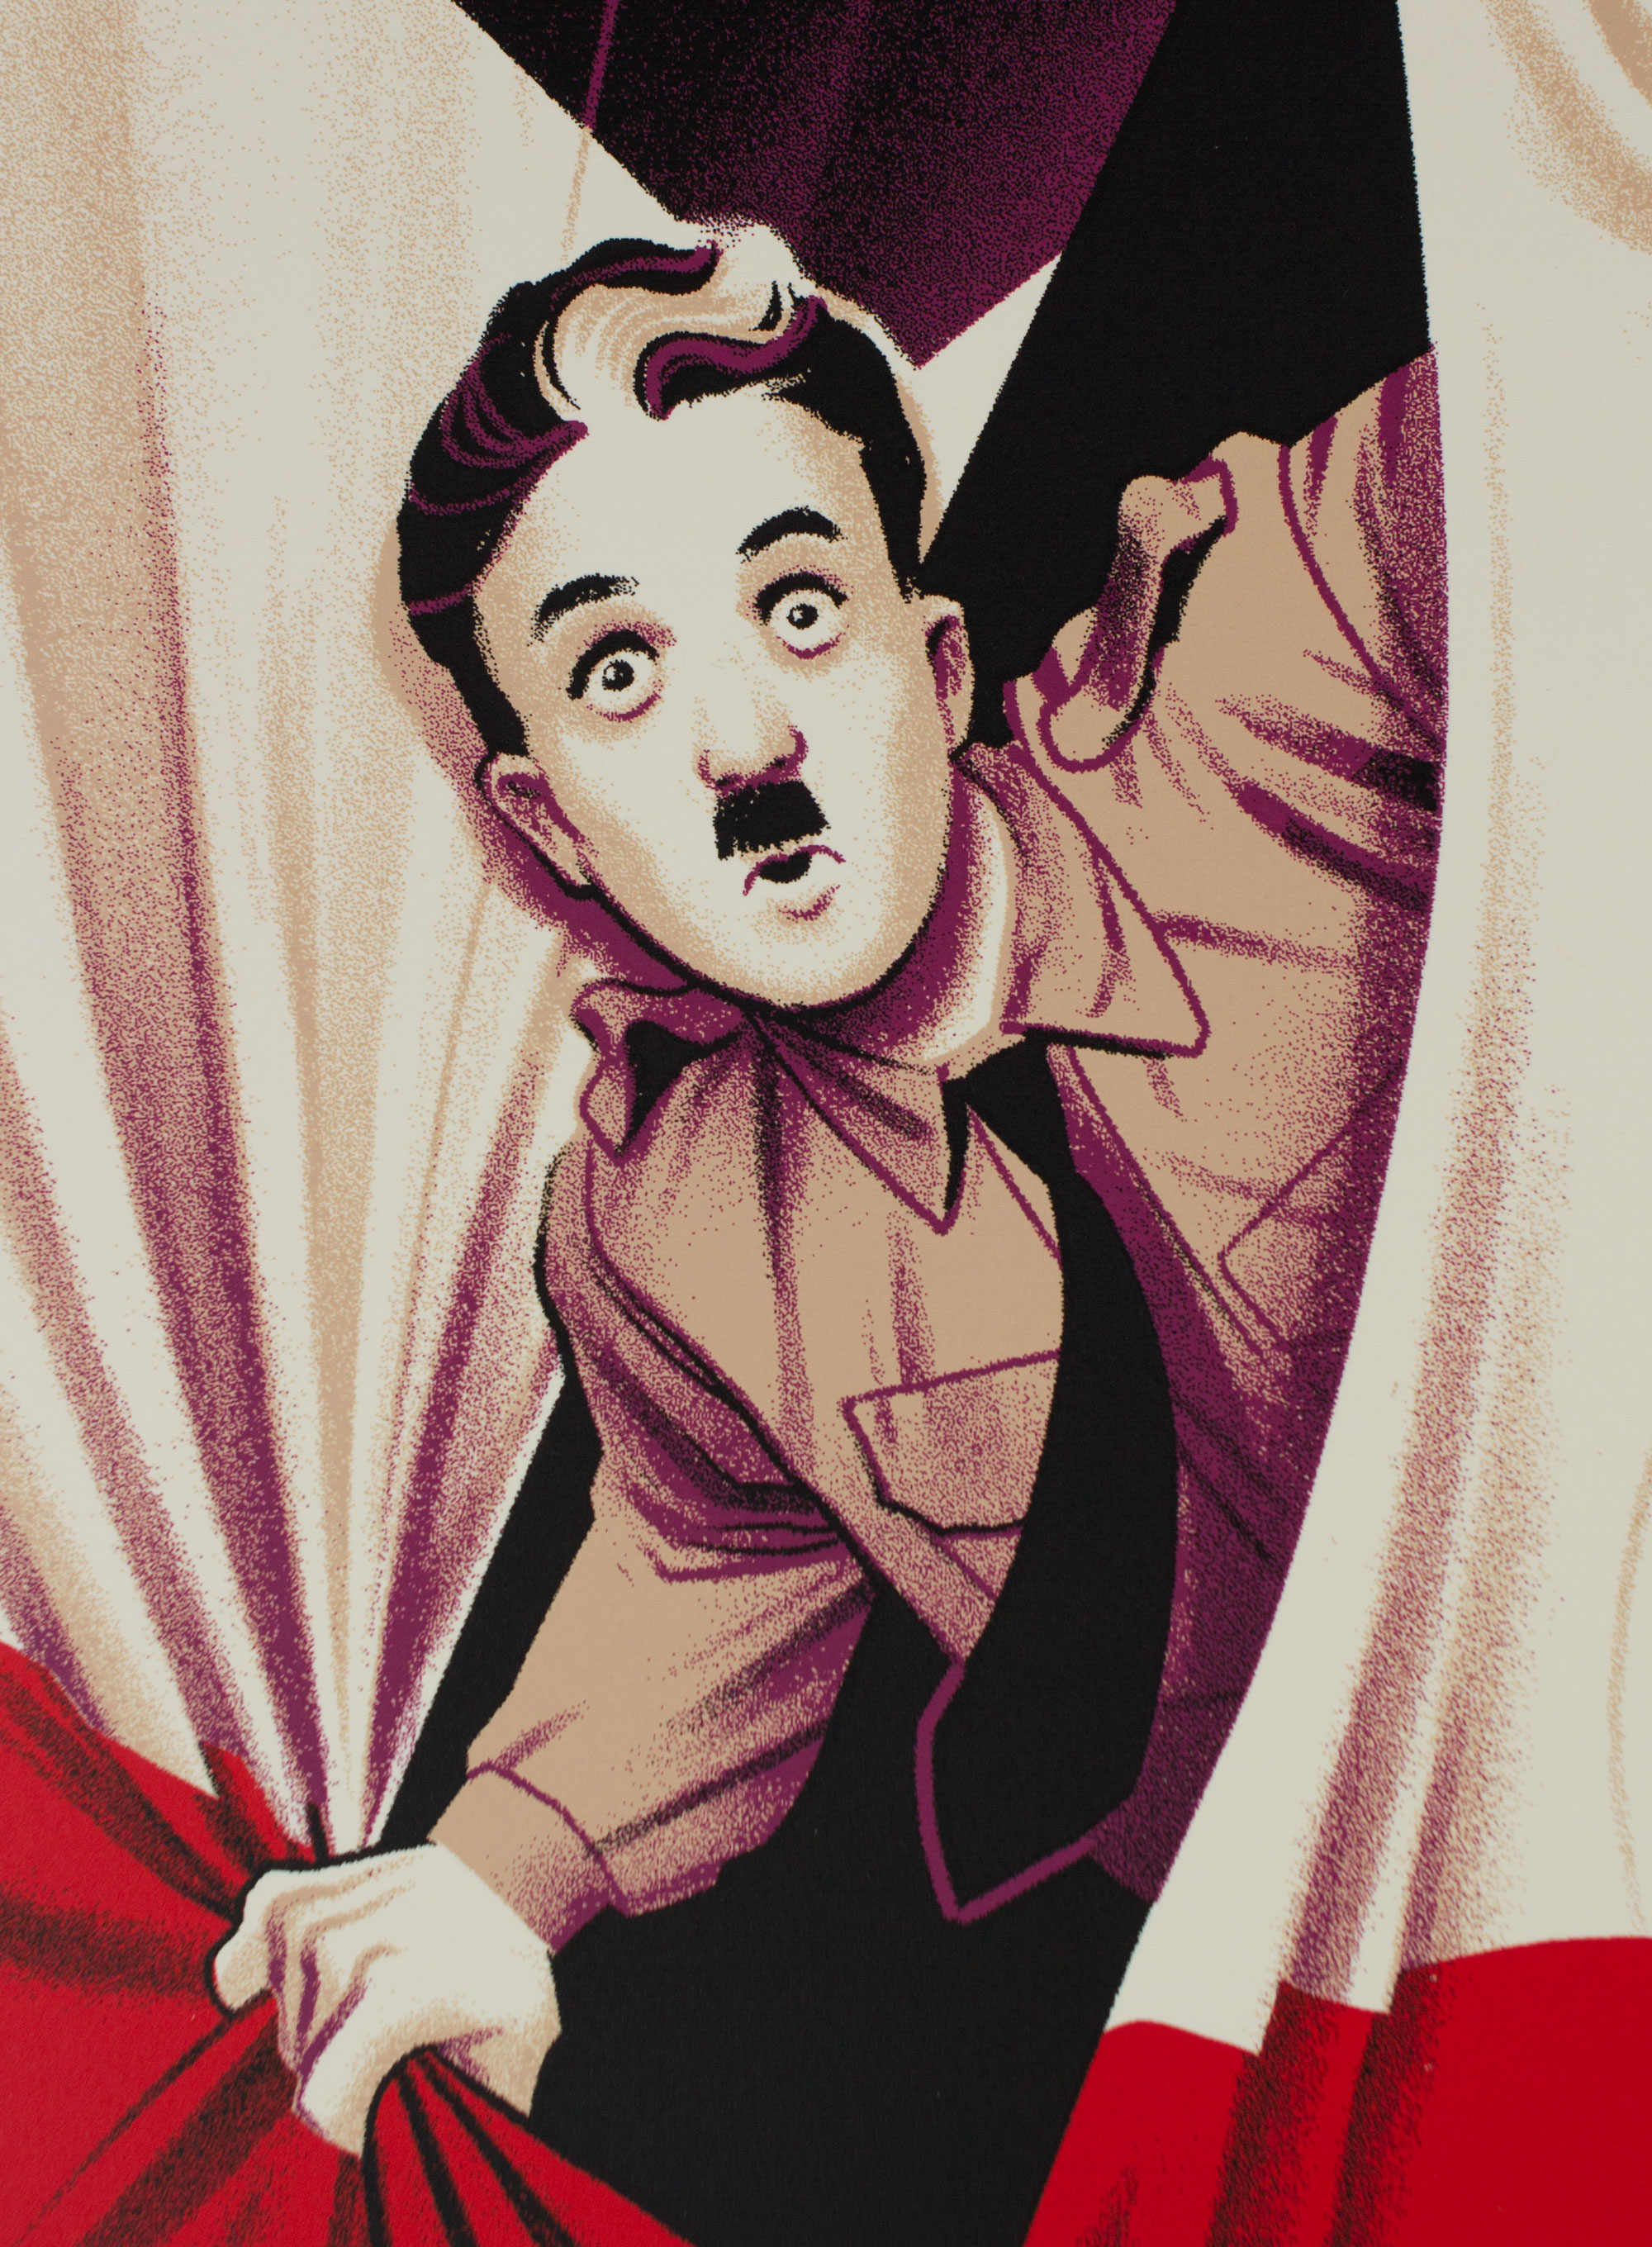 """Detail of """"The Great Dictator"""" by Justin Erickson"""